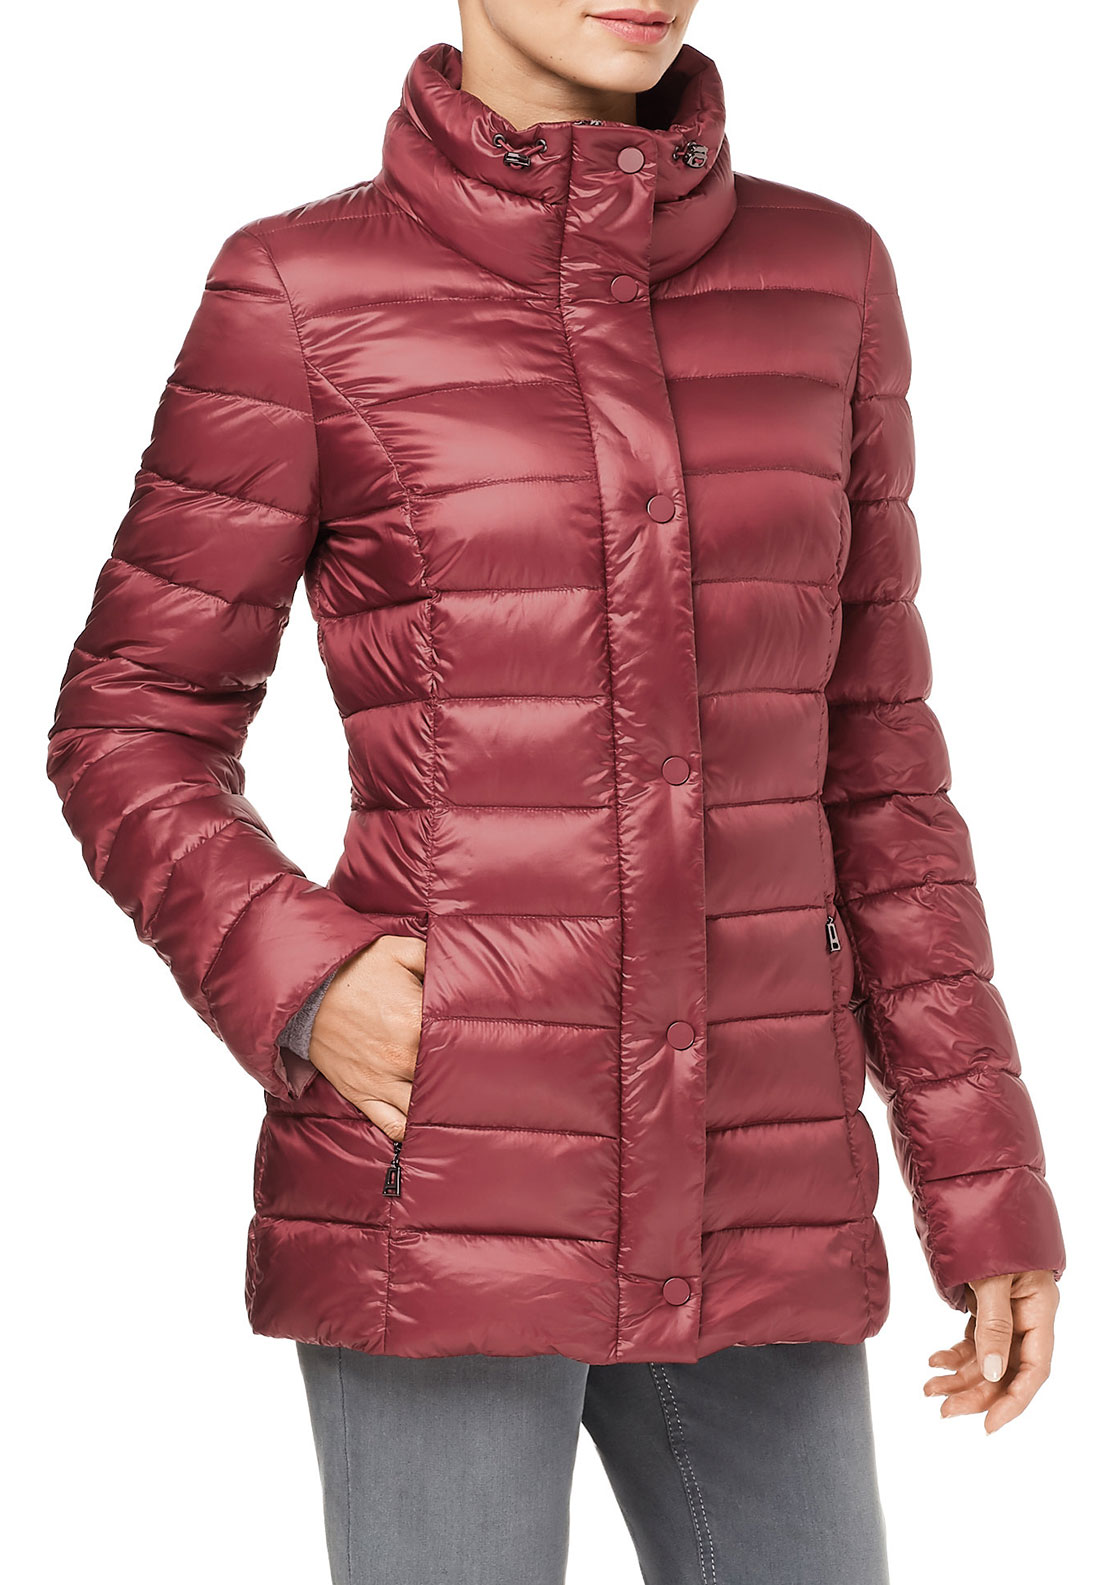 Gerry Weber Padded Jacket, Deep Red